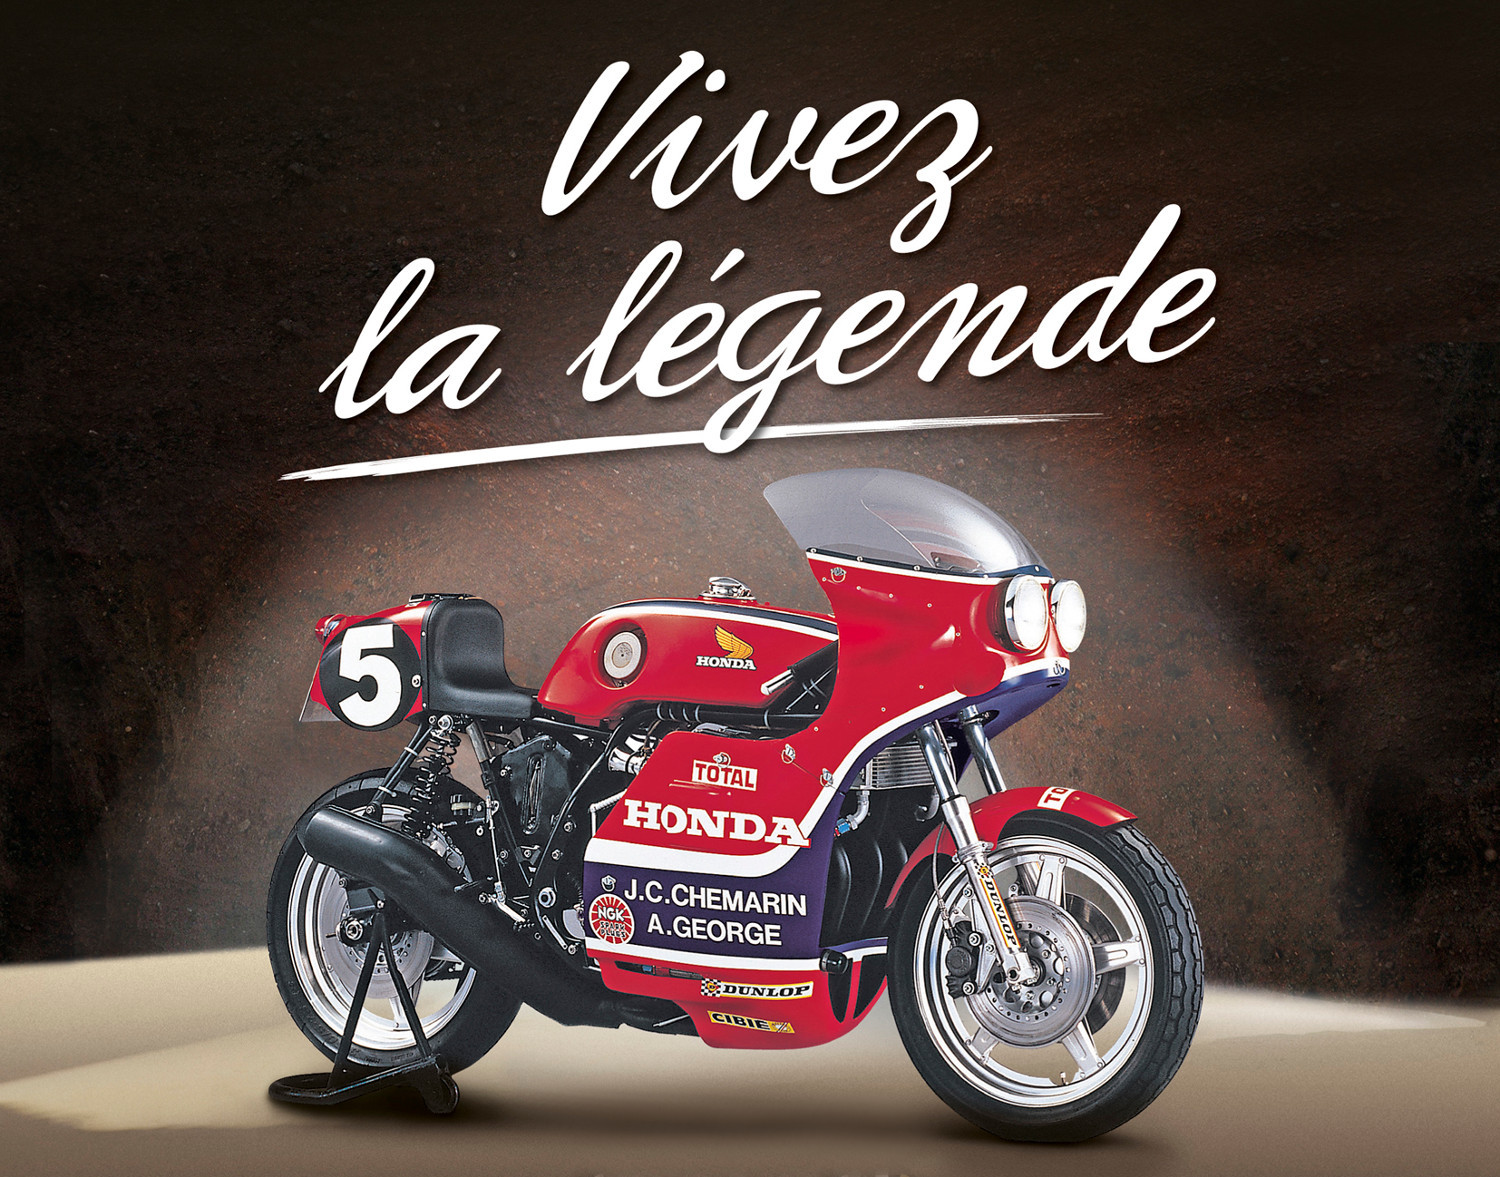 visuel_salon_moto_legende_ETR